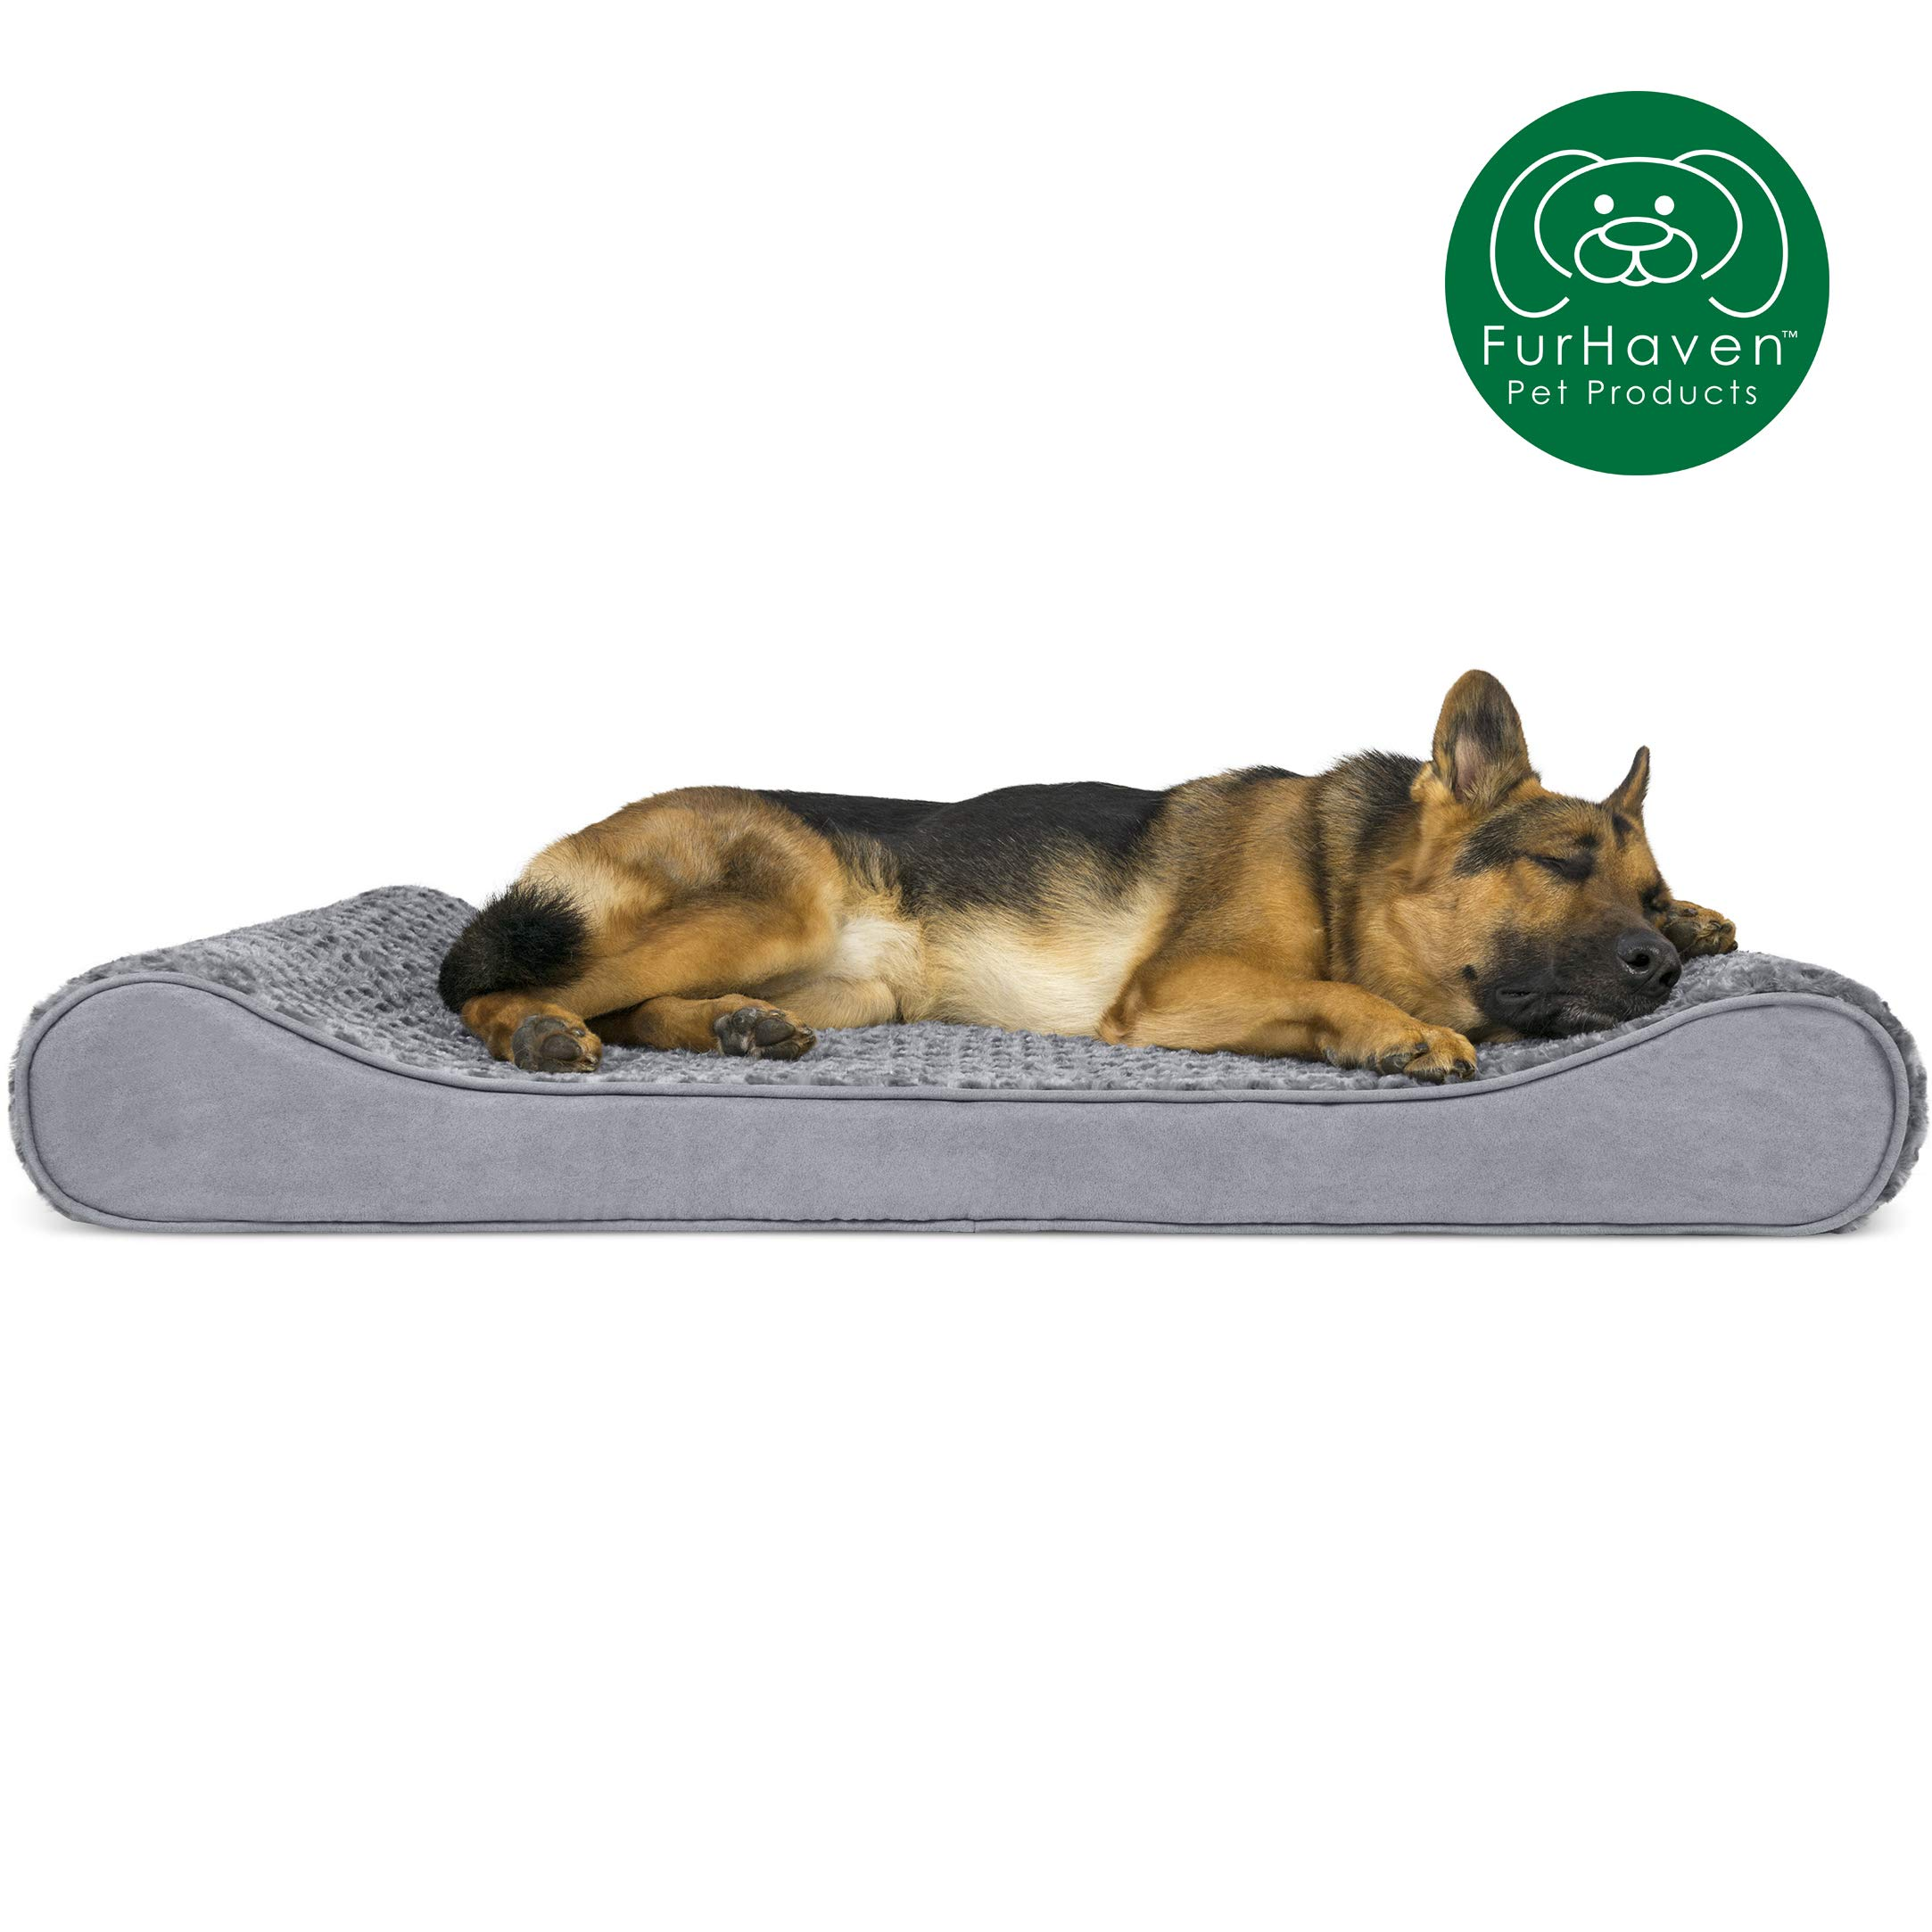 Furhaven Pet Dog Bed | Orthopedic Ultra Plush Faux Fur Ergonomic Luxe Lounger Cradle Mattress Contour Pet Bed w/ Removable Cover for Dogs & Cats, Gray, Jumbo by Furhaven